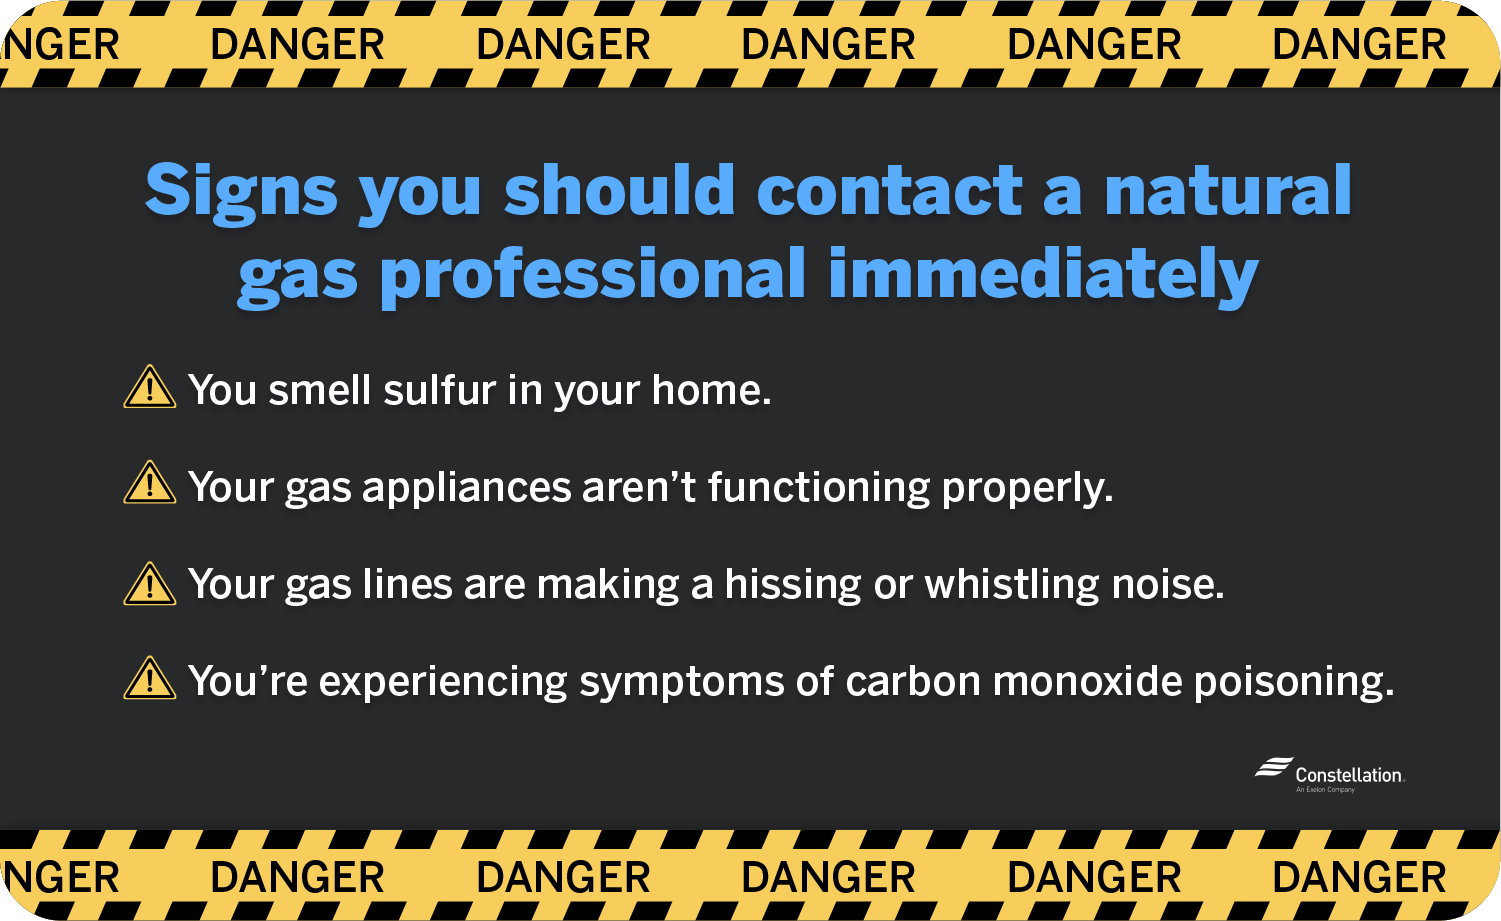 Signs you should contact a natural gas professional for immediate assistance